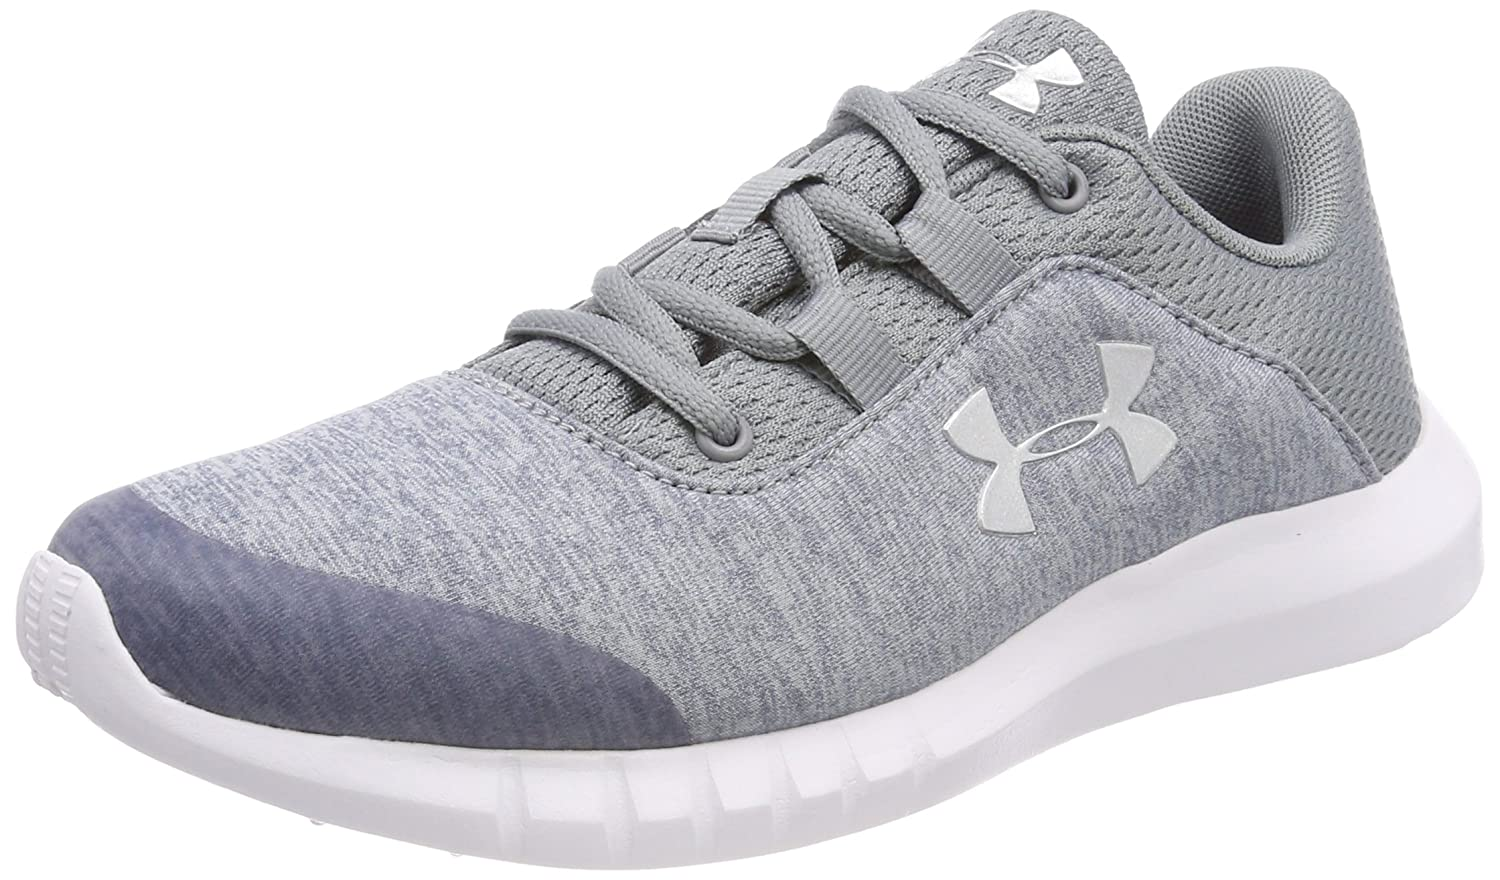 Under Armour UA GGS Mojo, Mojo, Mojo, Chaussures de Running Compétition Fille 40 EU|Gris (Steel) 940765